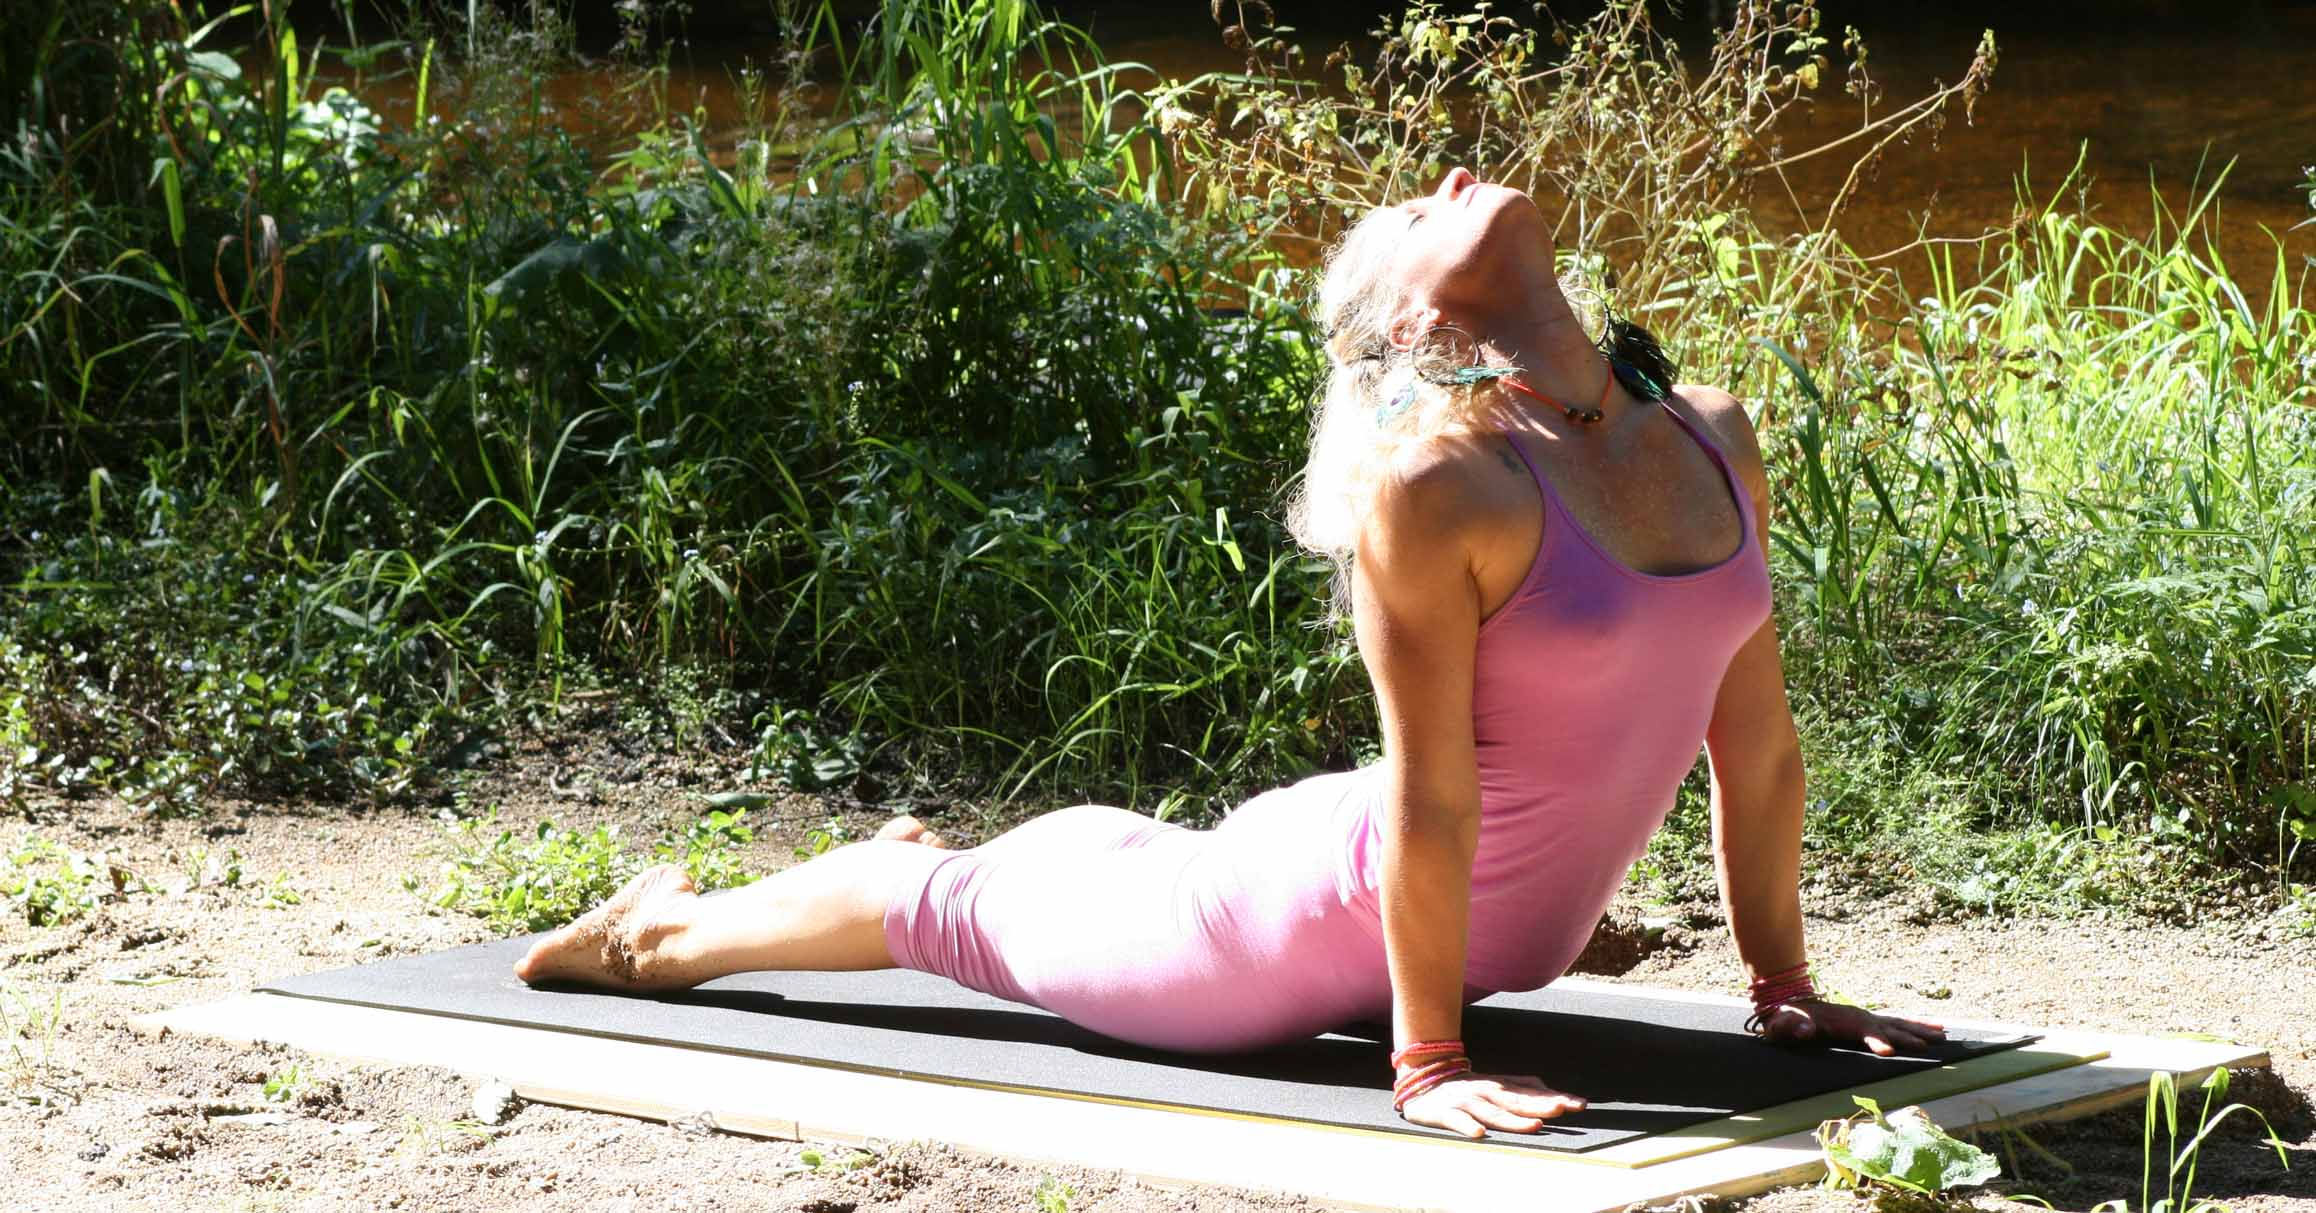 YOGA BADEN BEI WIEN - DEDICATION TO FINDING THE LIGHT OF LOVE IN YOUR DAILY PRACTICE OF BEING